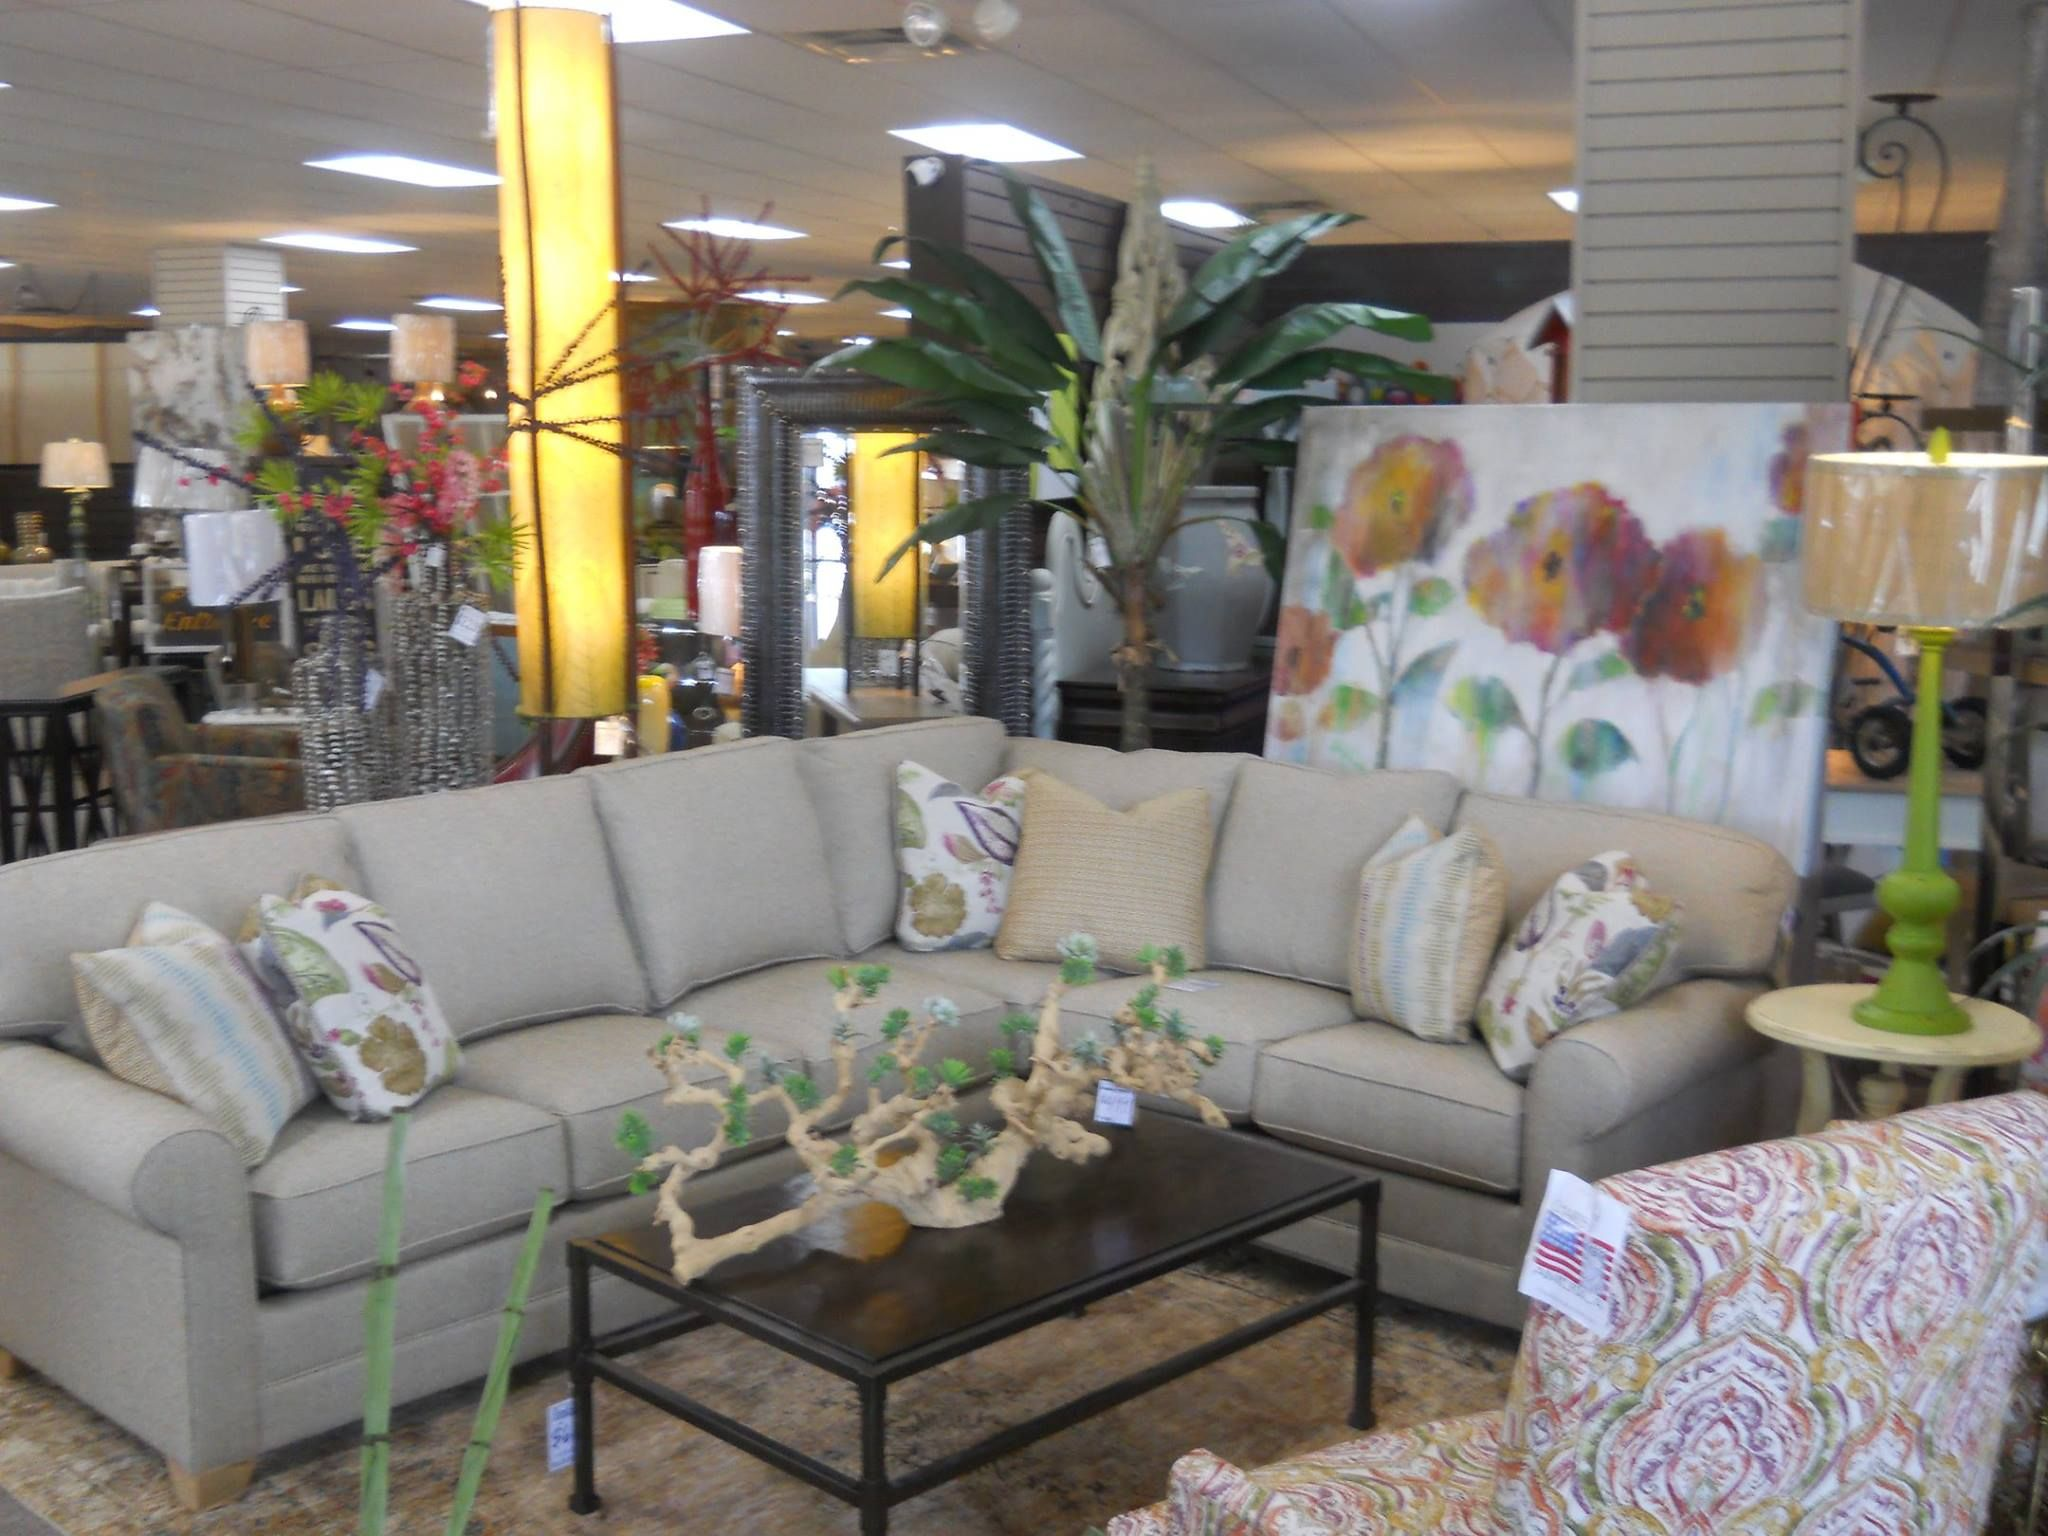 Perfect King Hickory Sectional From Arkansas Furniture In Hot Springs